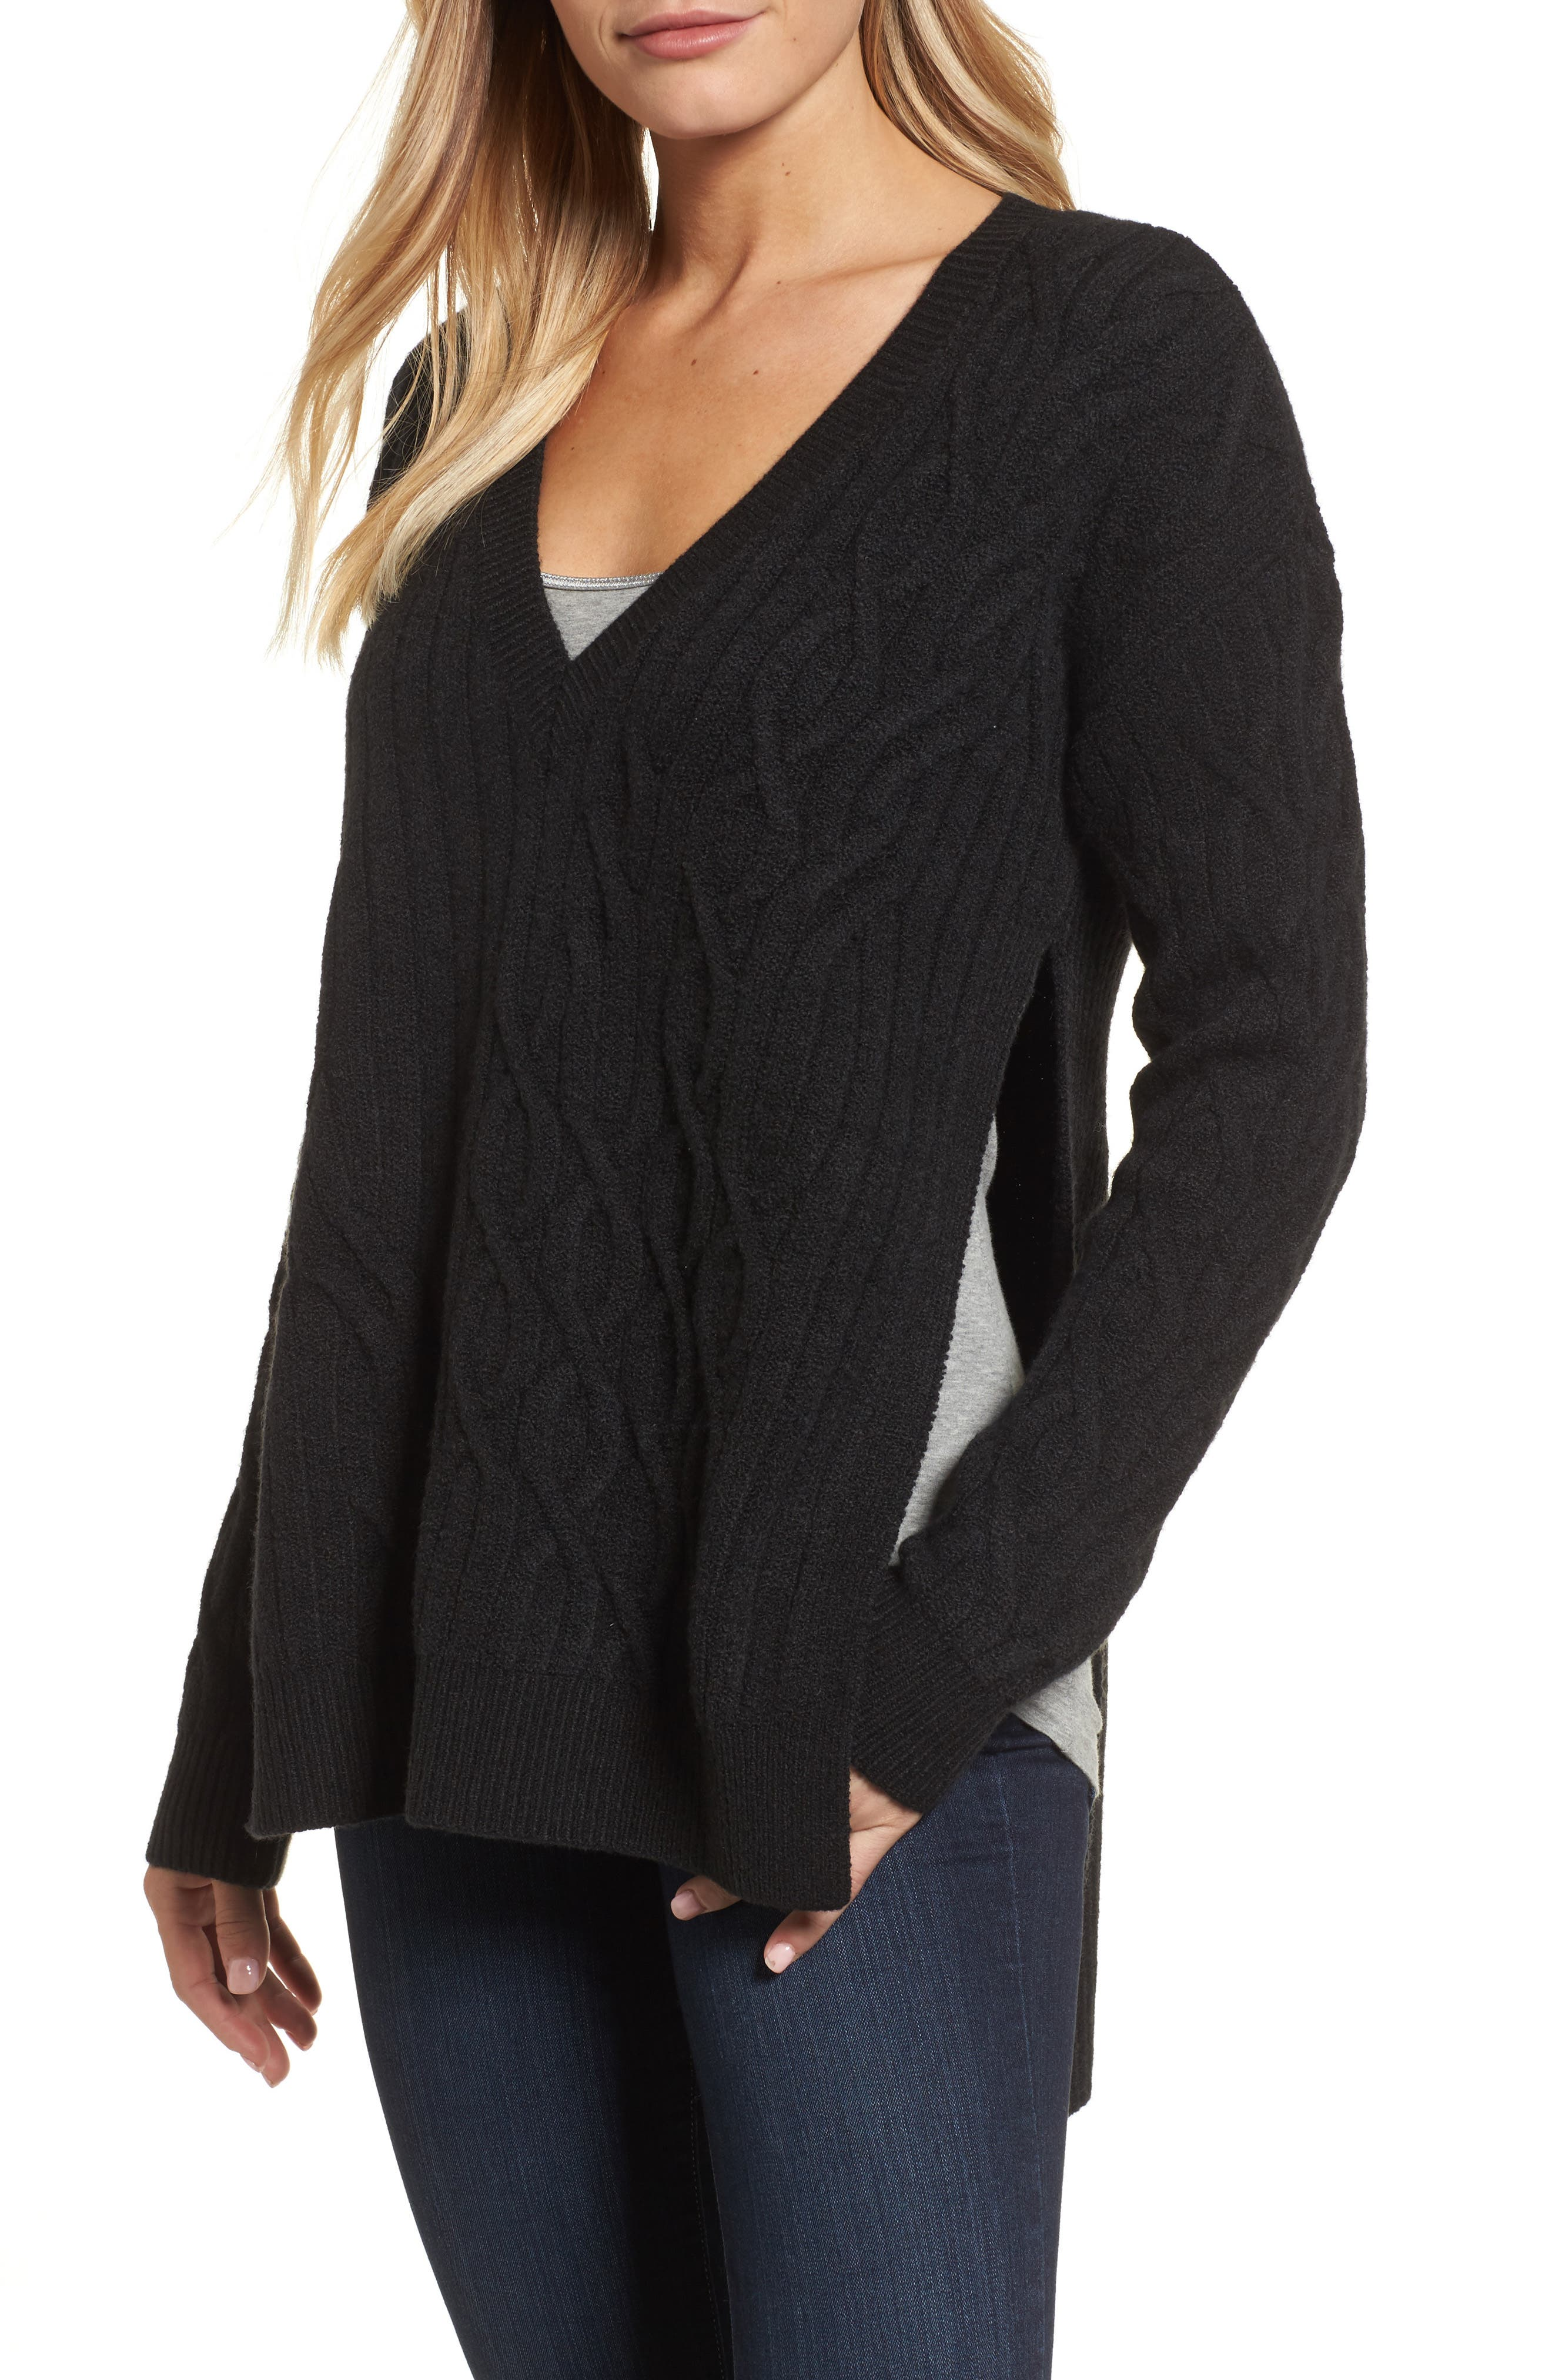 Irregular Cable Knit Sweater,                             Main thumbnail 1, color,                             Black